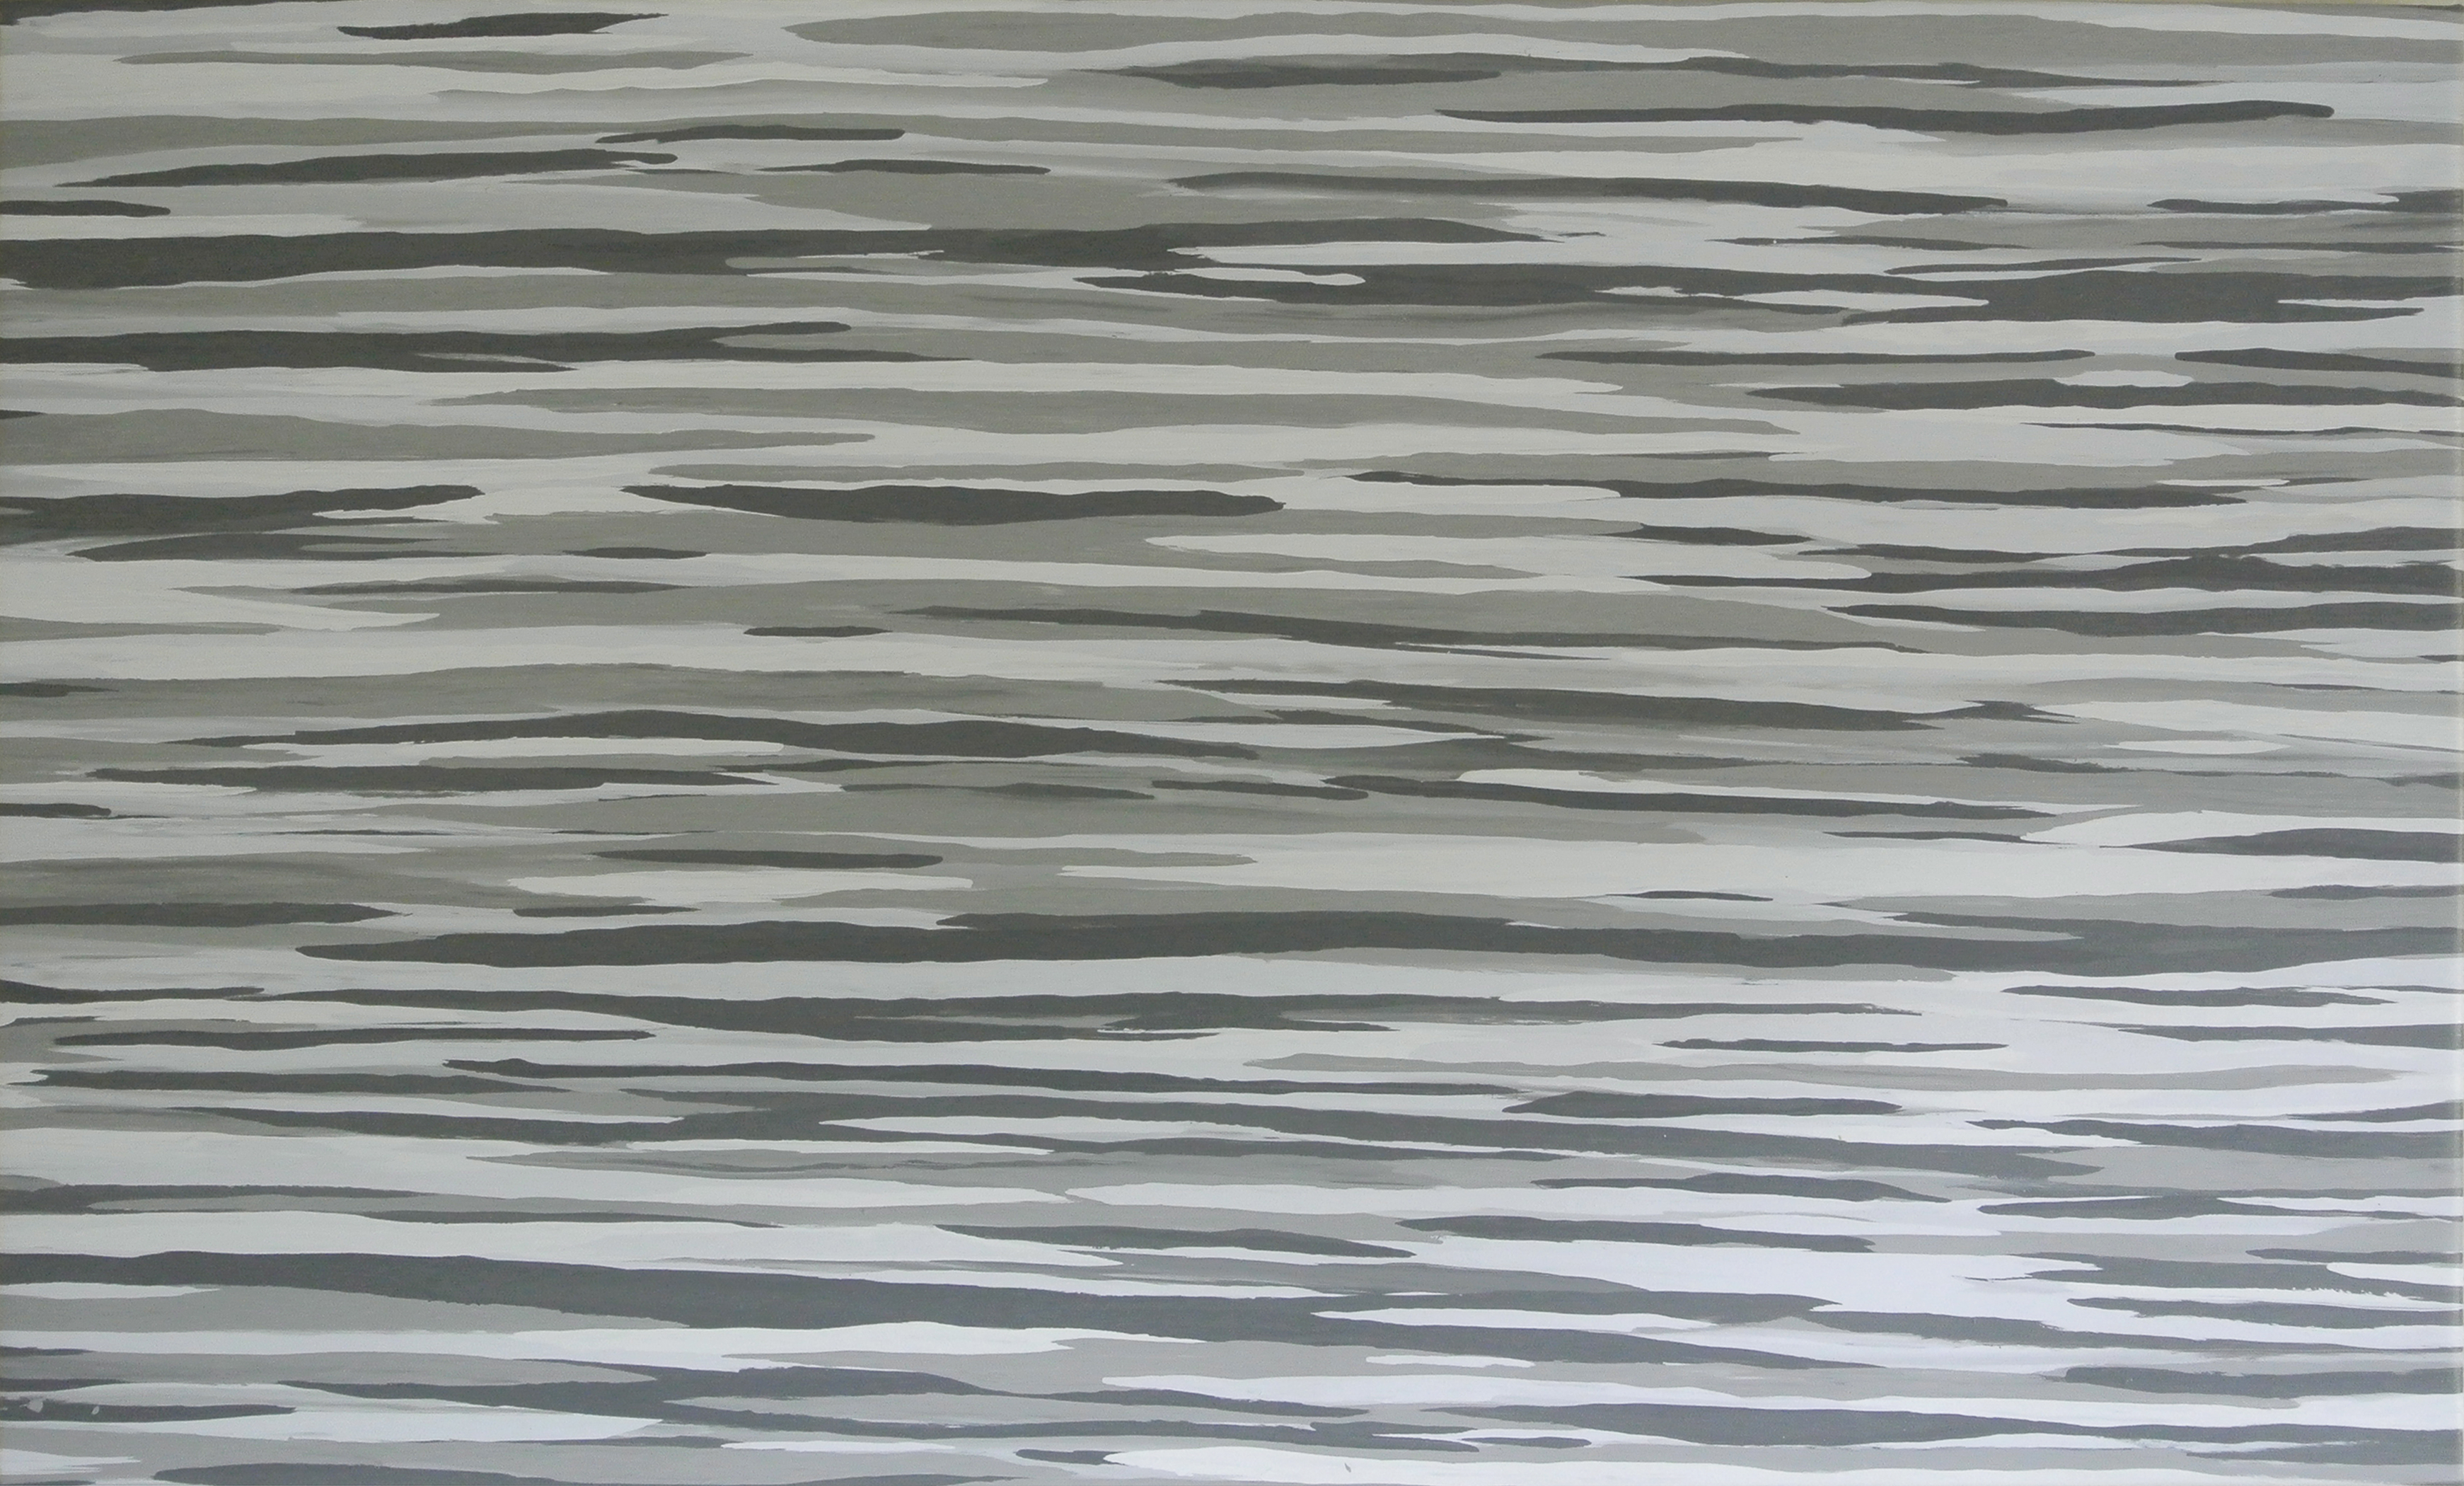 Tranquil Series: Neutral Greys